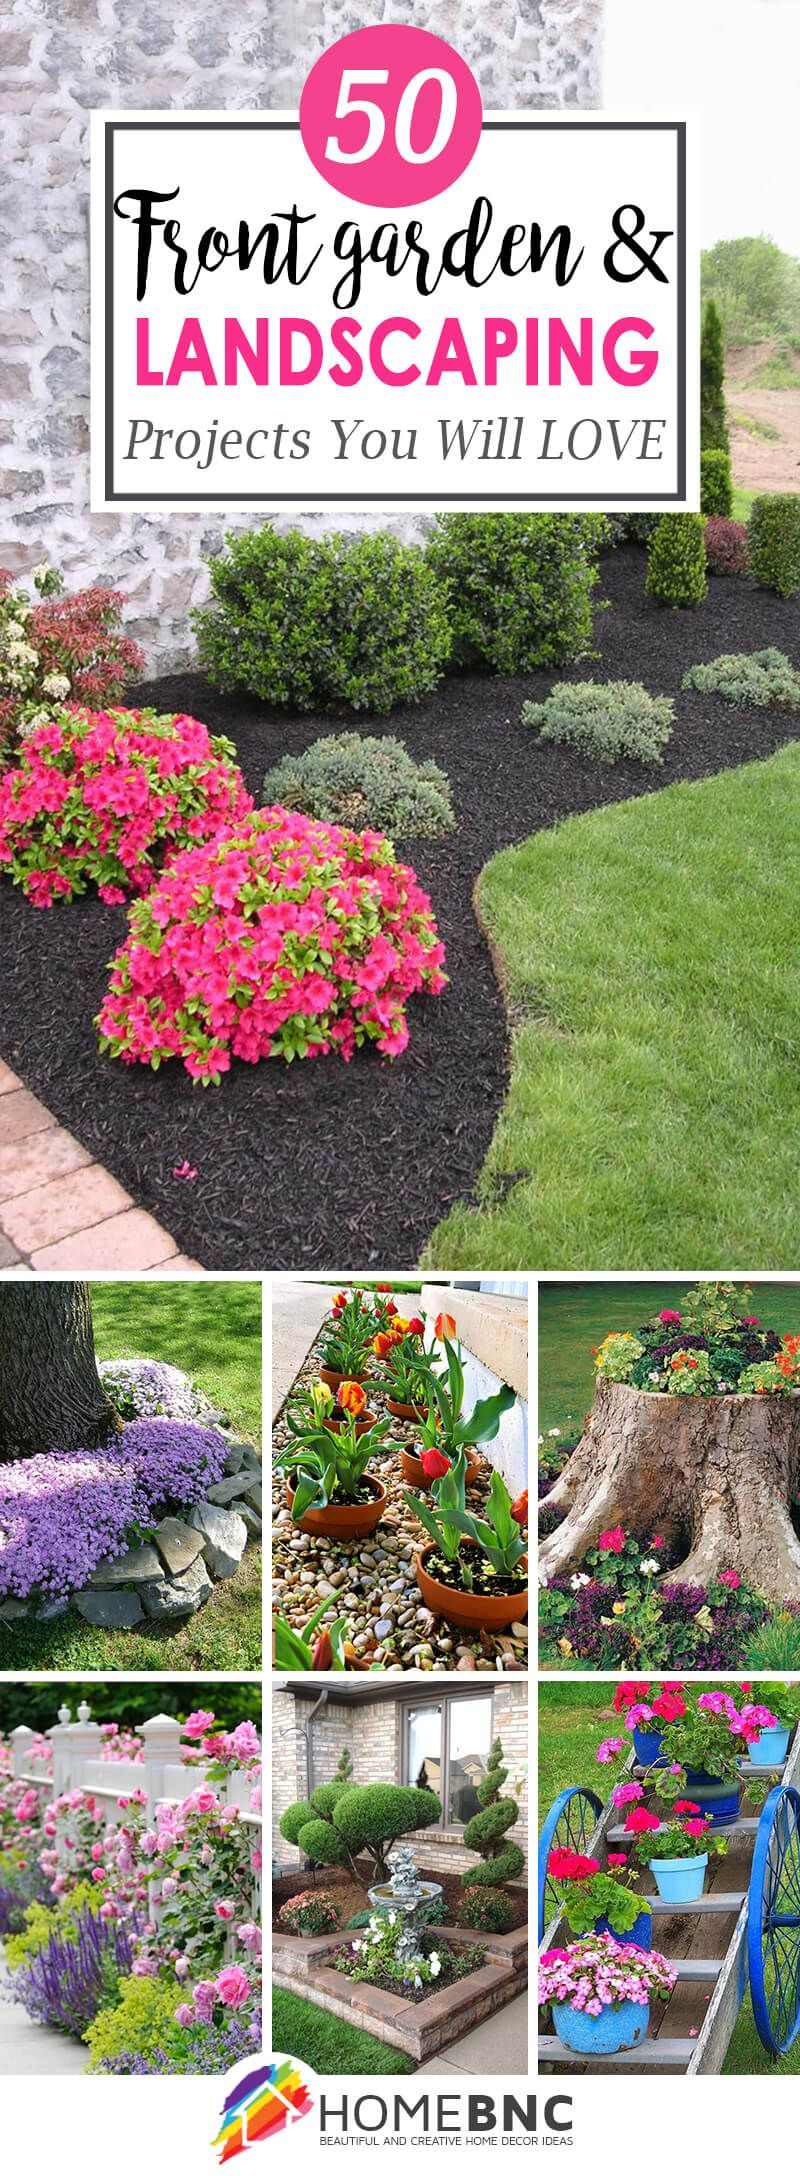 50 Brilliant Front Garden And Landscaping Projects You Ll Love In 2020 Front Garden Landscape Front Yard Garden Landscape Projects